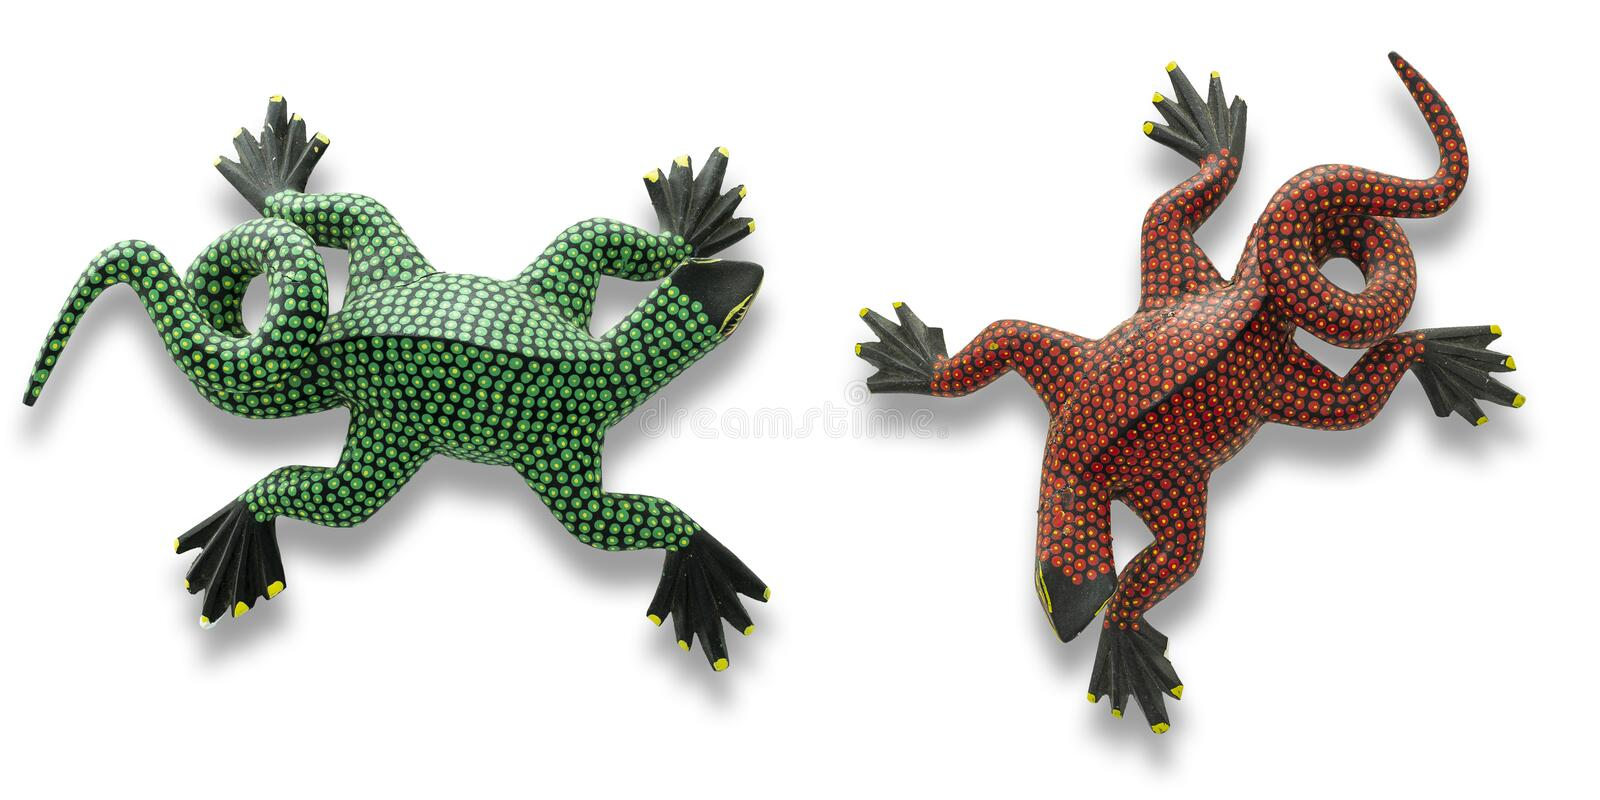 Two handmade Alebrijes in the state of Oaxaca on white background. Green and red alebrijes handmade crafts from San Martin Tilcajete in the state of Oaxaca royalty free stock image